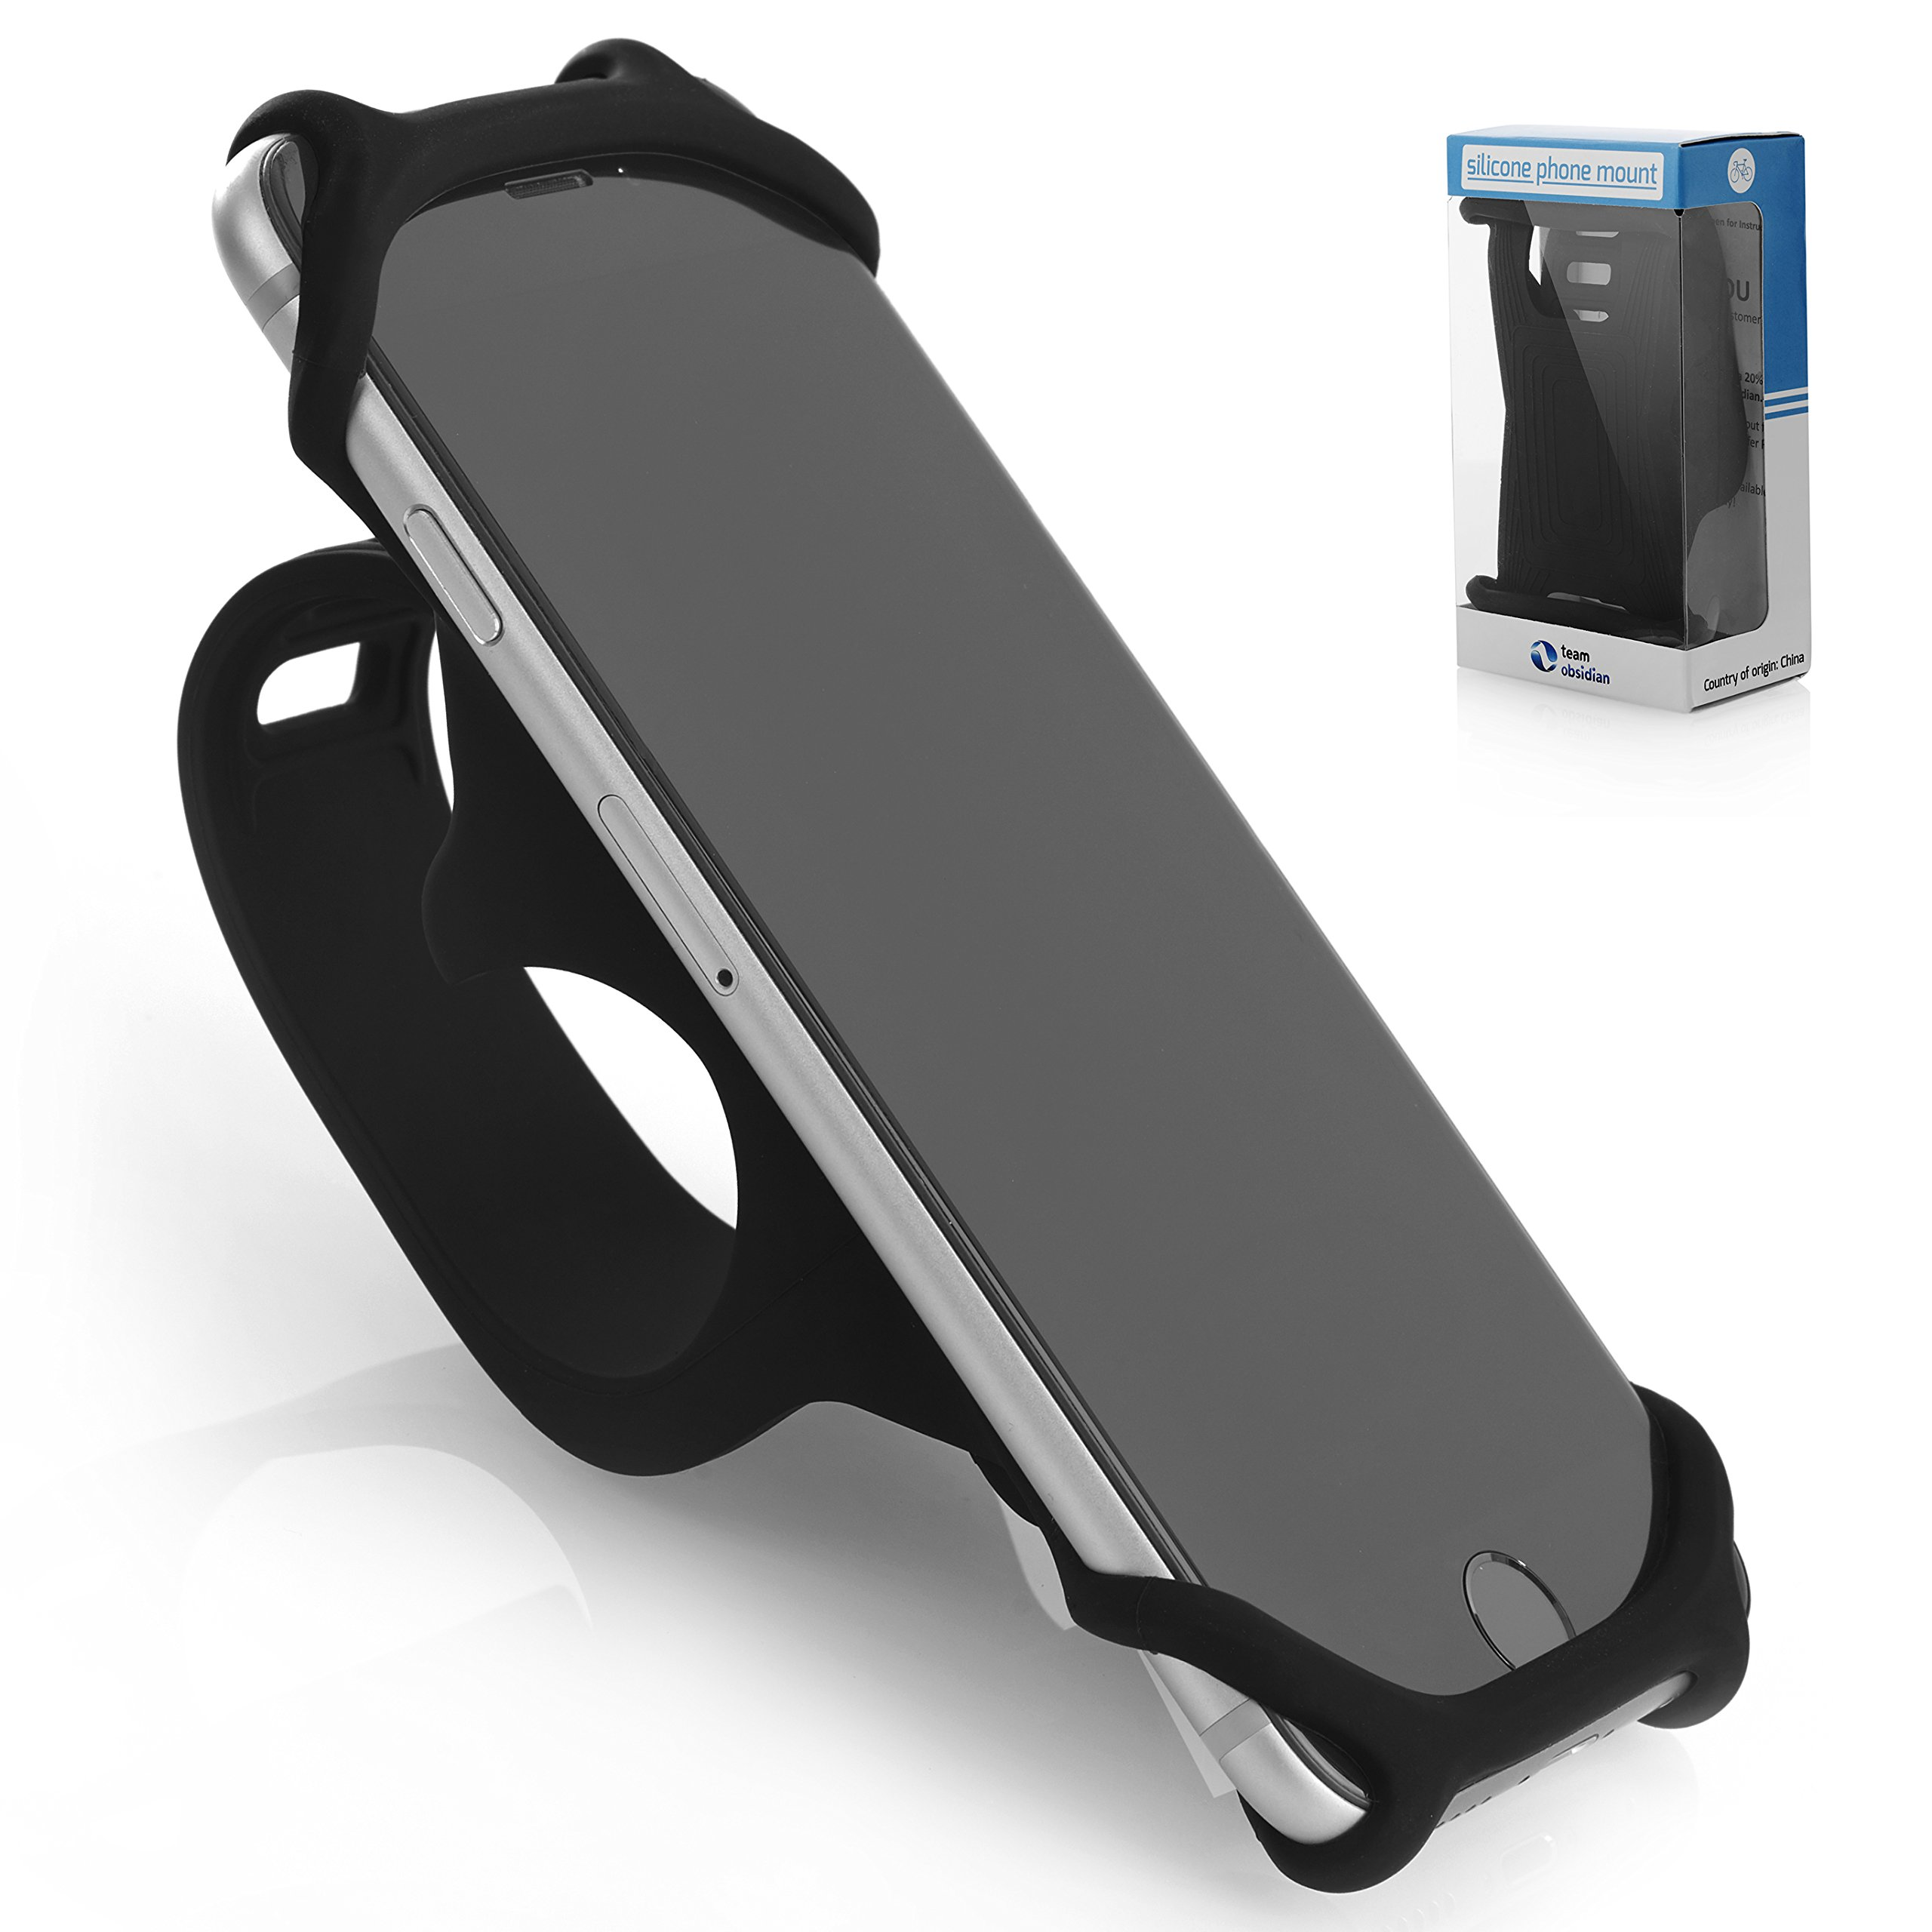 Bike PHONE MOUNT [ Size L ] Made of Durable Non-Slip Silicone. Mobile Cellphone Holder /Universal Cradle for All Bicycle Handlebars and 99% of Smartphones: iPhone X, 8, 7, 6, 5, Samsung etc.